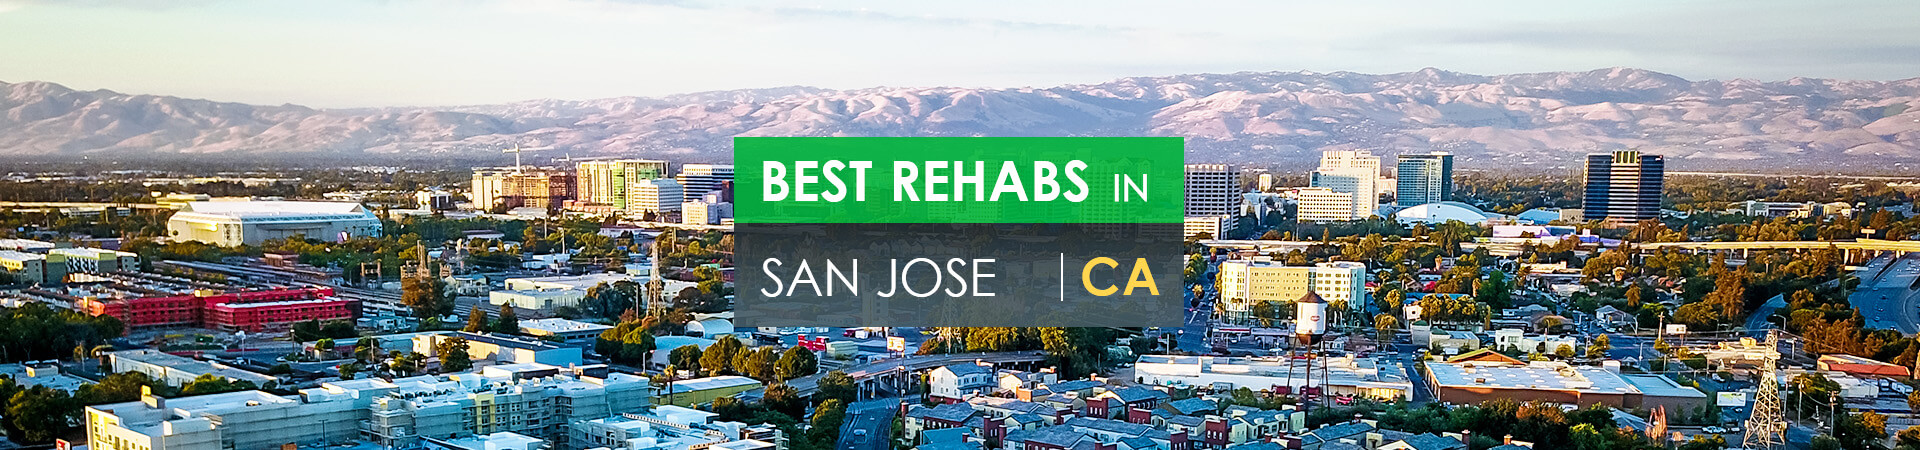 Best rehabs in San Jose, CA